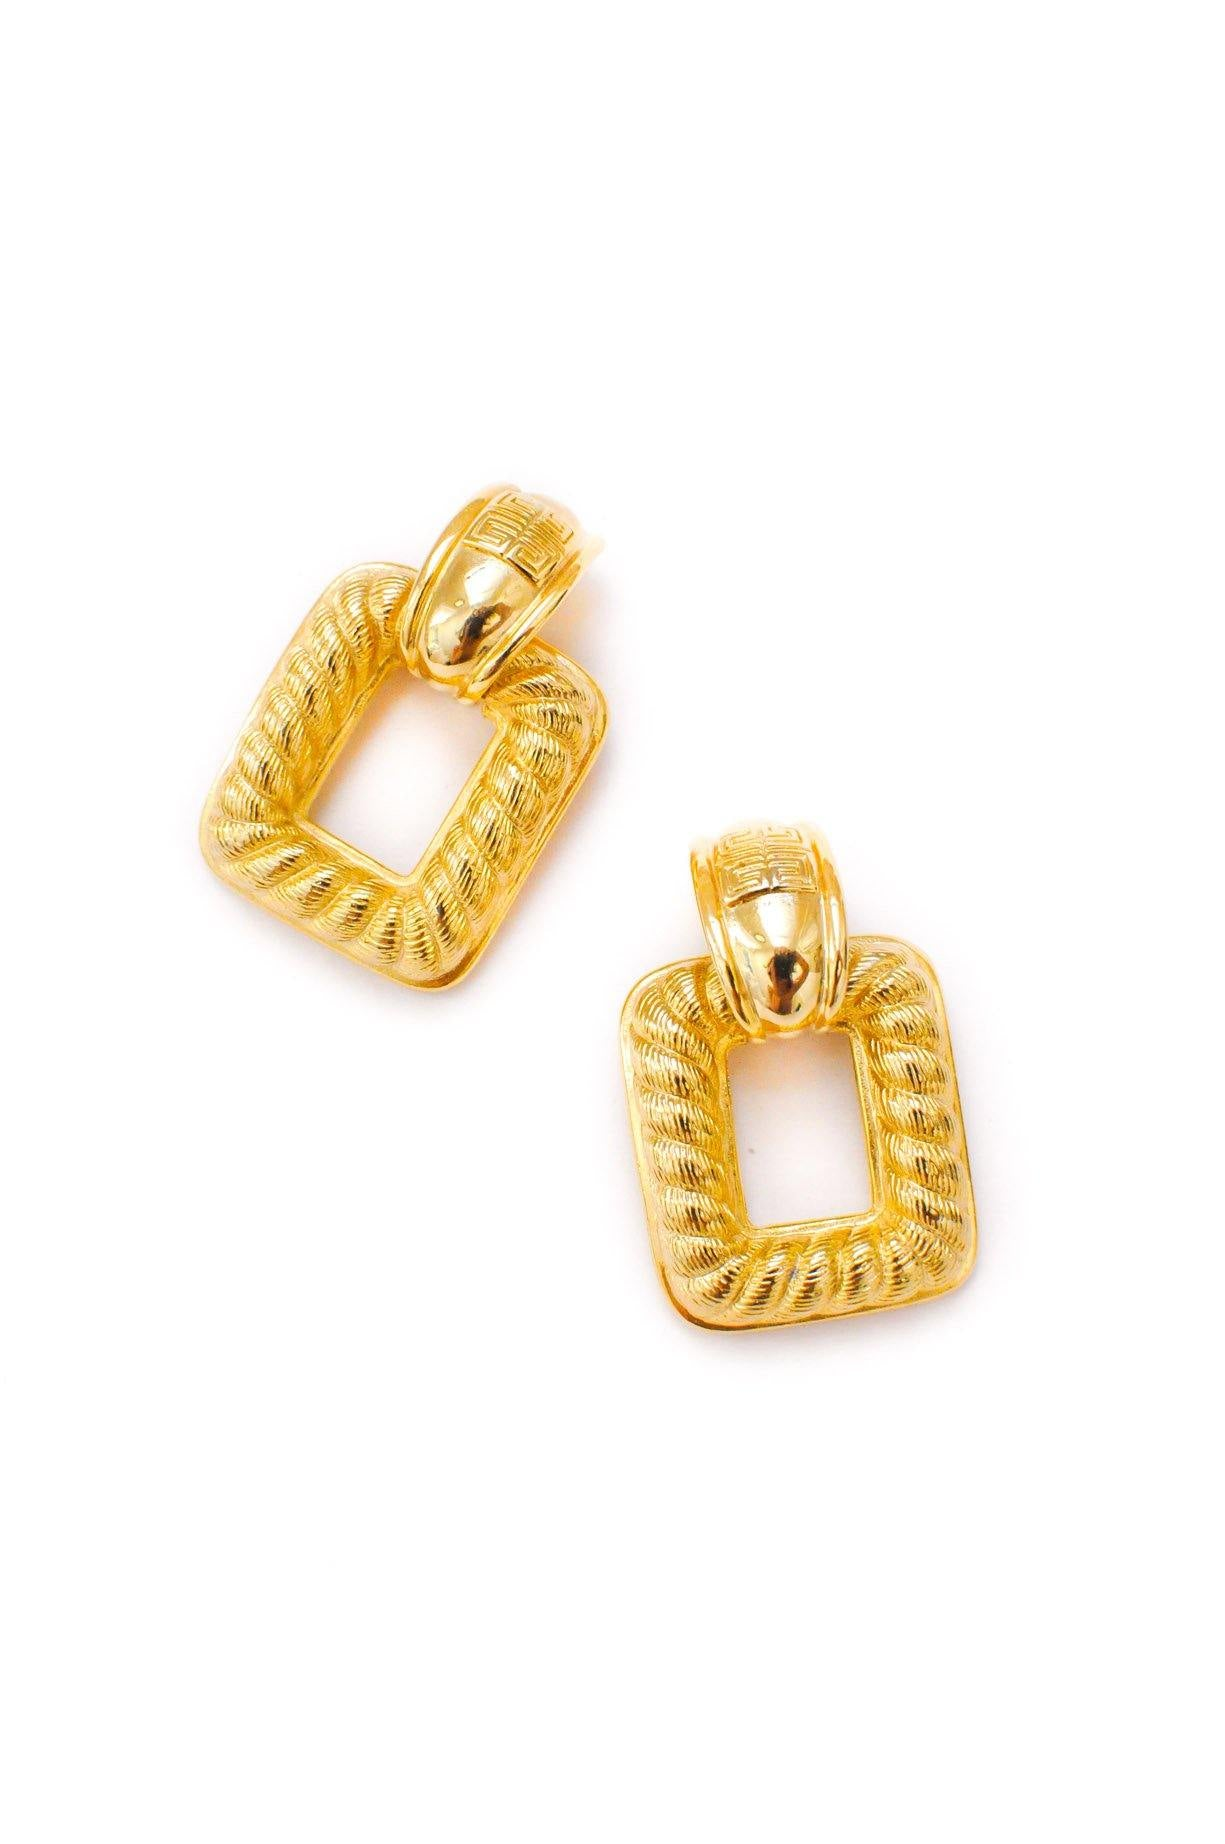 Vintage Givenchy Statement Door Knocker Earrings from Sweet & Spark.